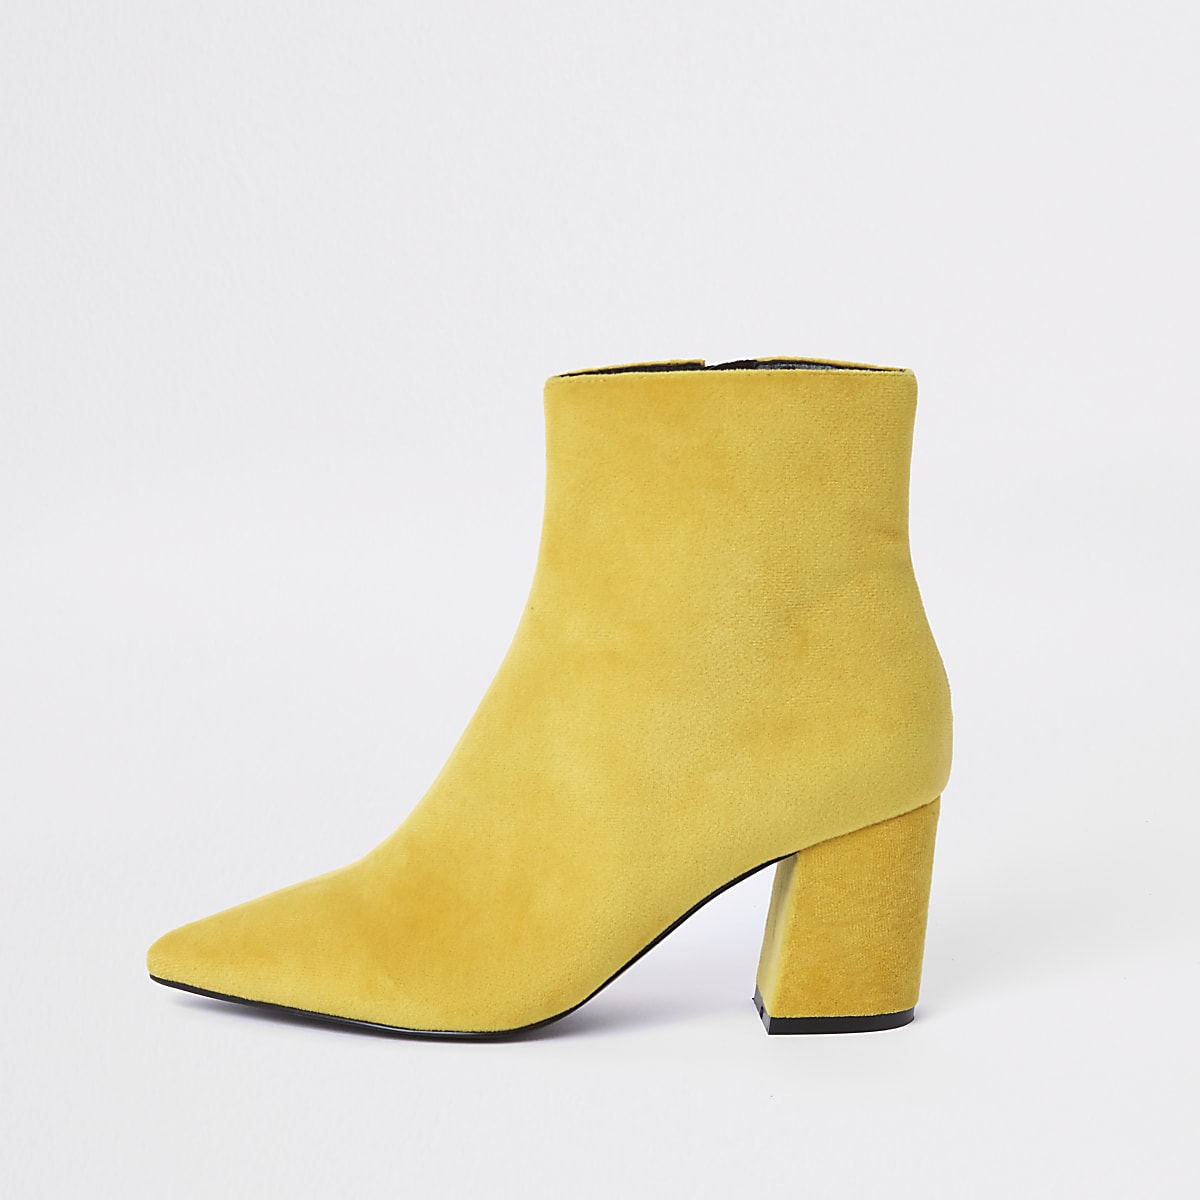 6af3ee04b0a Yellow pointed block heel boots - Boots - Shoes   Boots - women